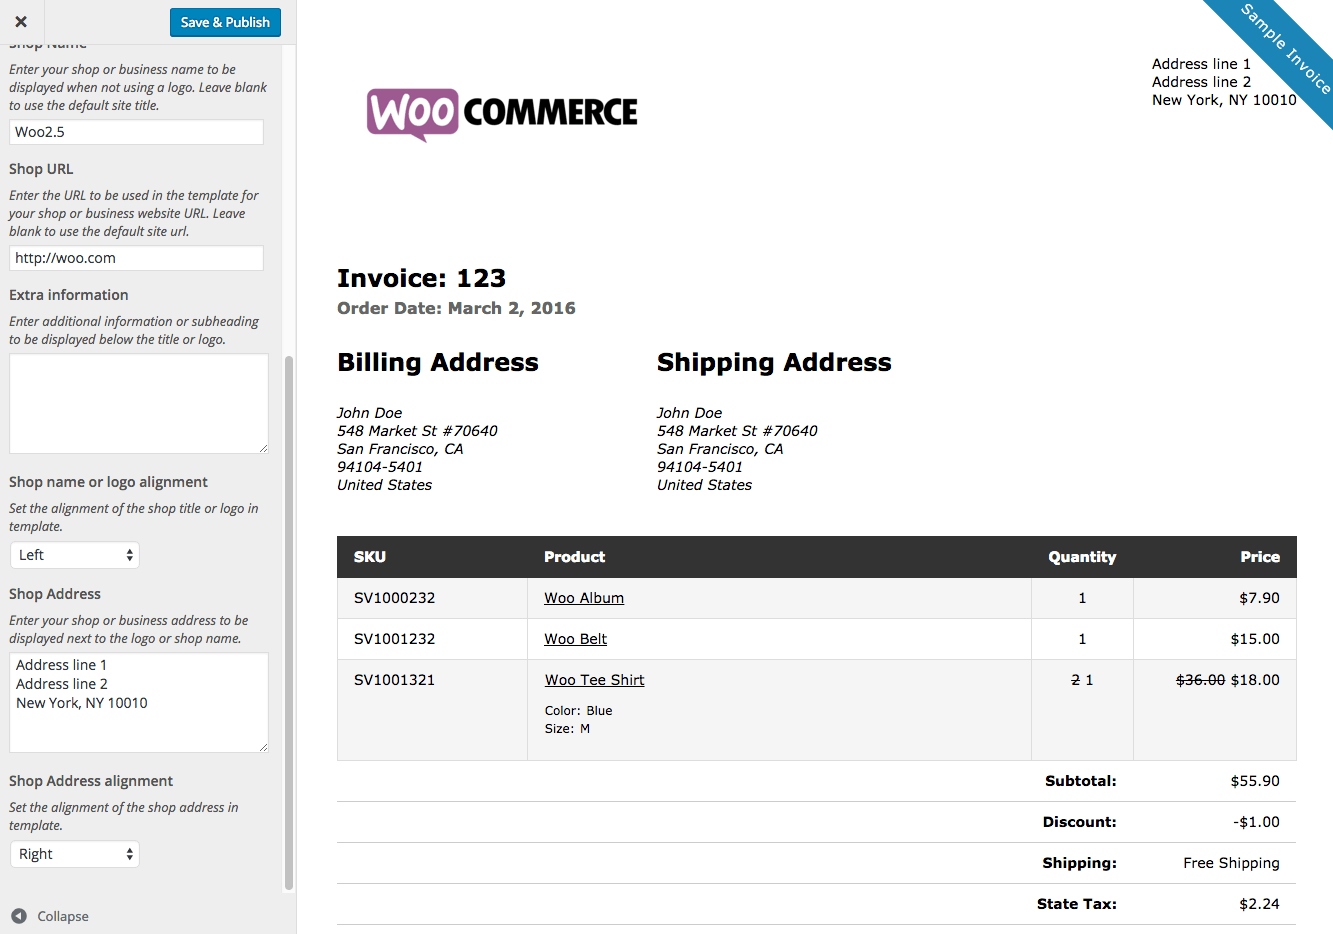 Centralasianshepherdus  Remarkable Print Invoices Amp Packing Lists  Woocommerce With Exciting Woocommerce Print Invoices  Packing Lists Customizer With Delightful Receipt Book Template Pdf Also Define Tax Receipts In Addition Where Is My Tracking Number On Post Office Receipt And General Receipt Form As Well As Confirming The Receipt Of An Email Additionally Receipt Of House Rent From Woocommercecom With Centralasianshepherdus  Exciting Print Invoices Amp Packing Lists  Woocommerce With Delightful Woocommerce Print Invoices  Packing Lists Customizer And Remarkable Receipt Book Template Pdf Also Define Tax Receipts In Addition Where Is My Tracking Number On Post Office Receipt From Woocommercecom